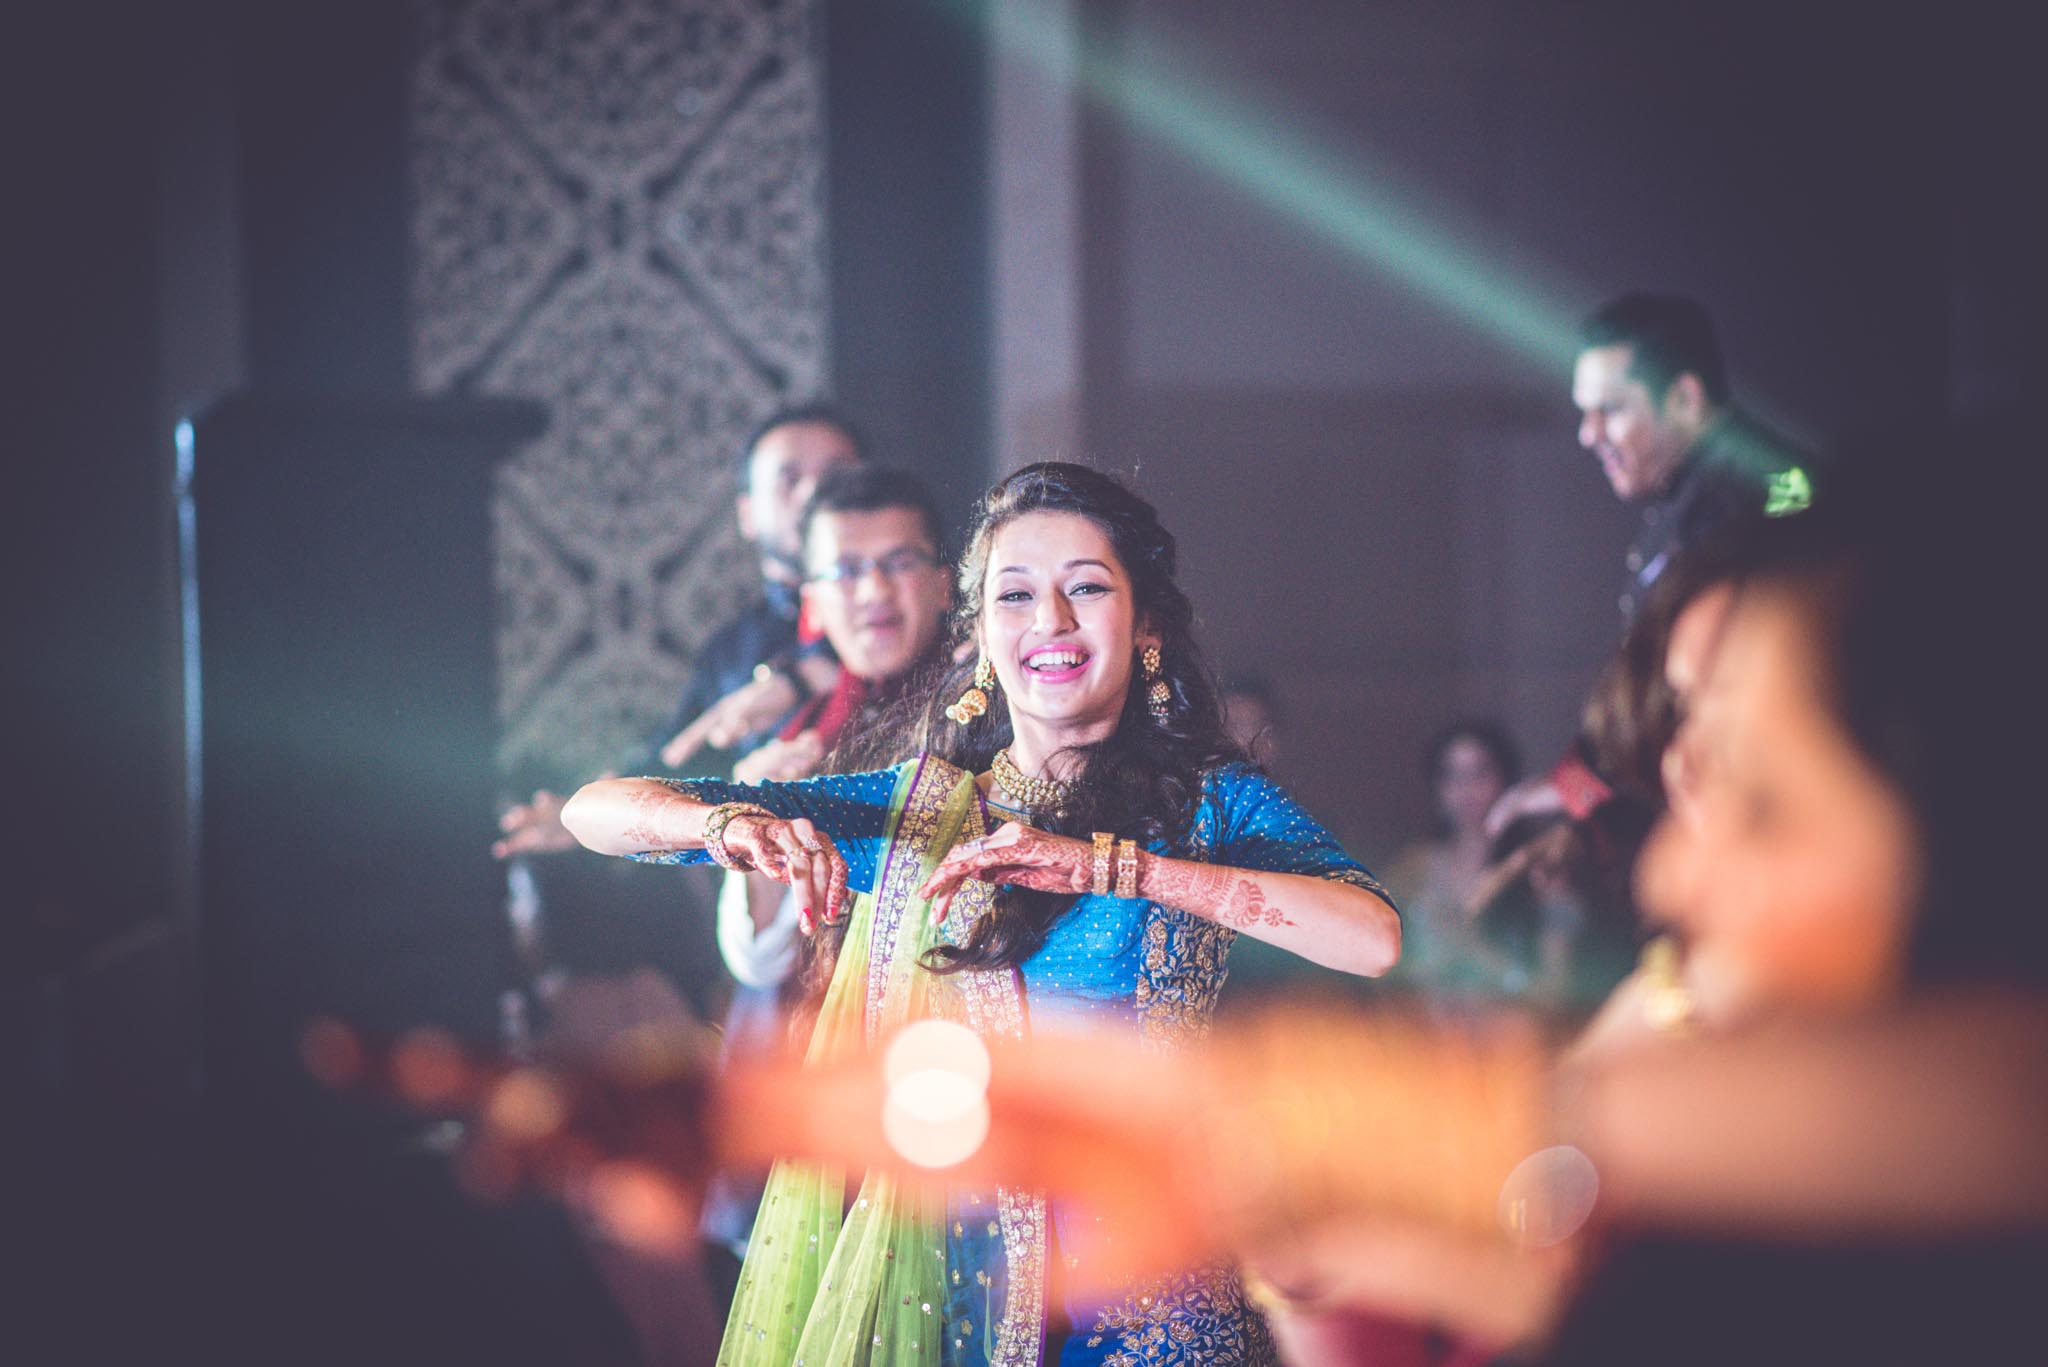 StRegis-Palladium-Mumbai-Candid-Wedding-Photography-68